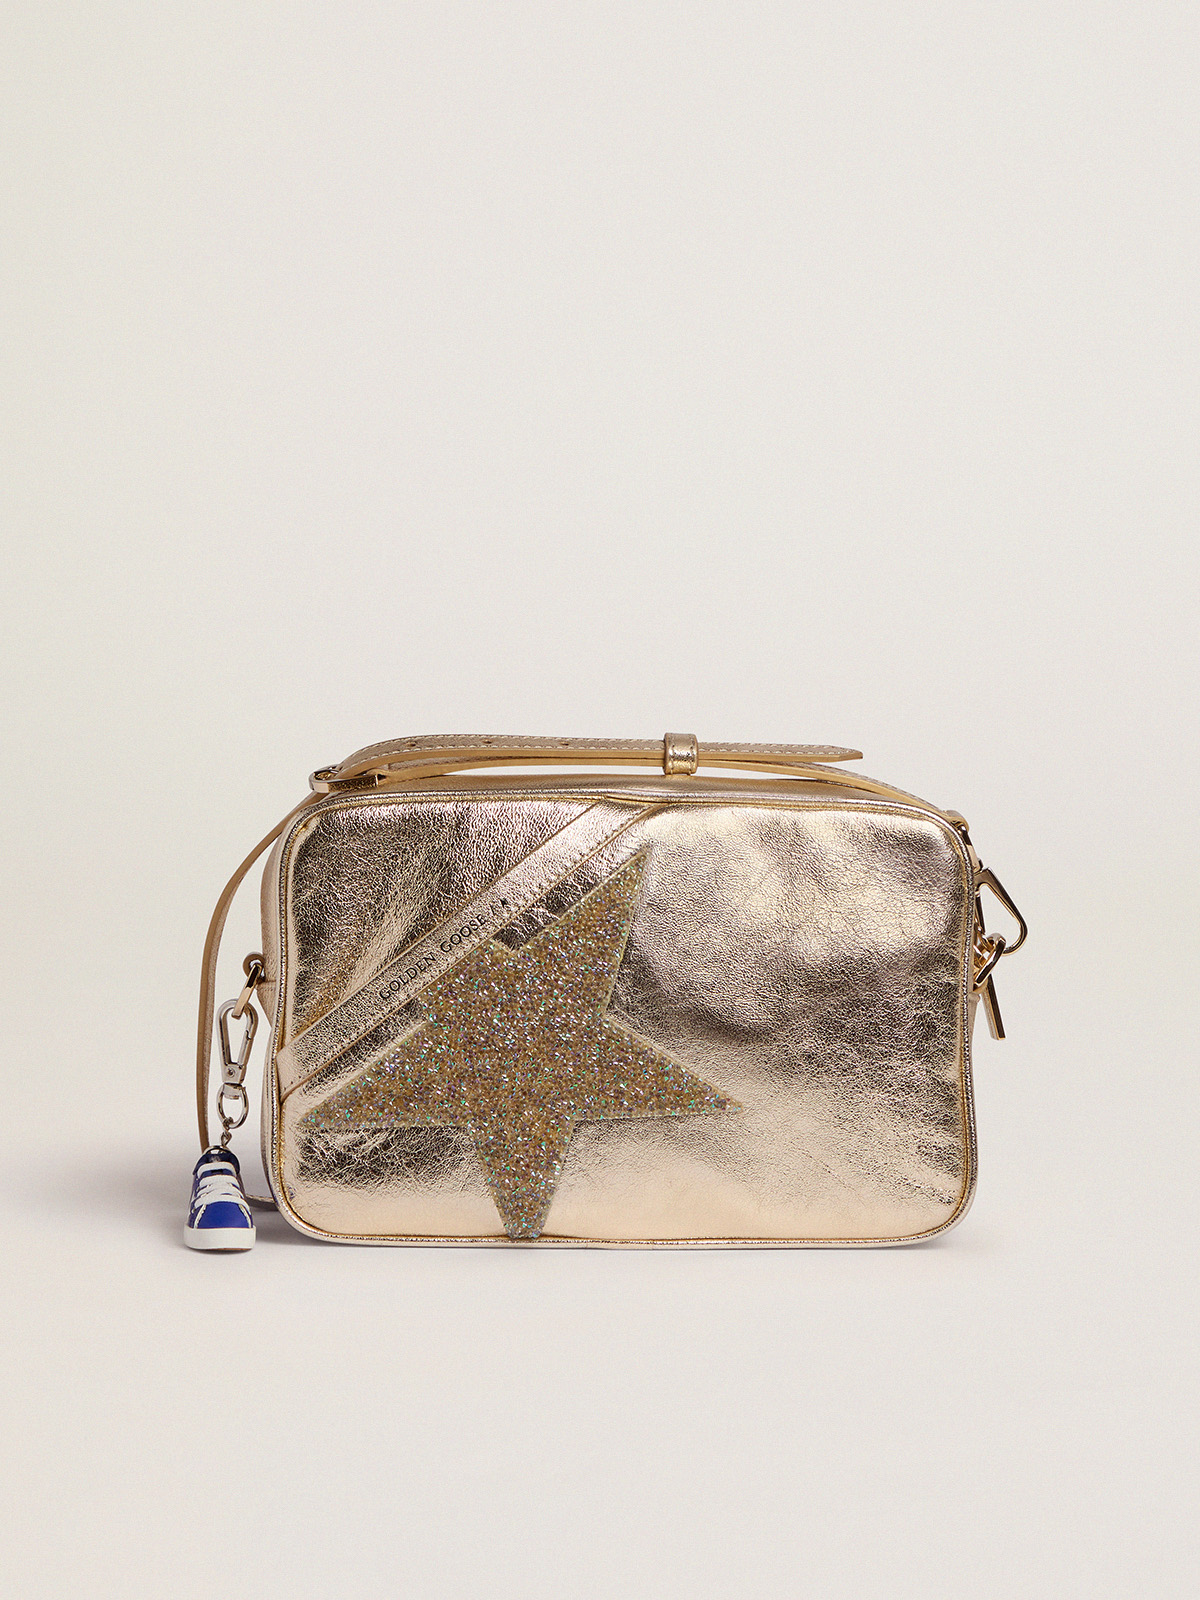 Golden Goose - Golden Star Bag made of laminated leather with Swarovski star in